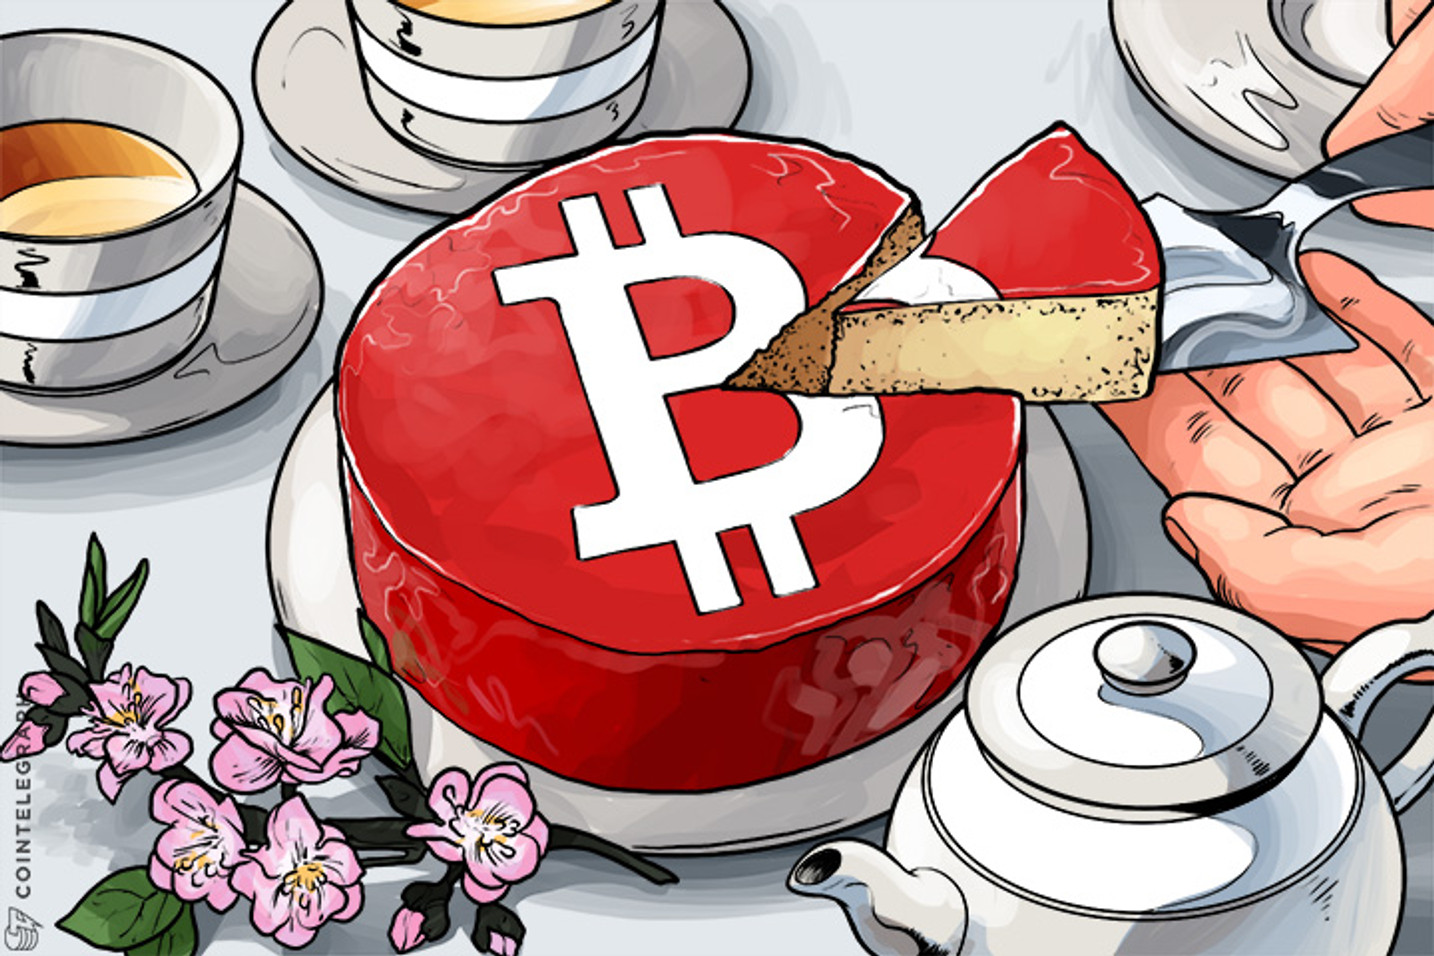 Japan to Roll Out Fixed Deposit Interest for Bitcoin